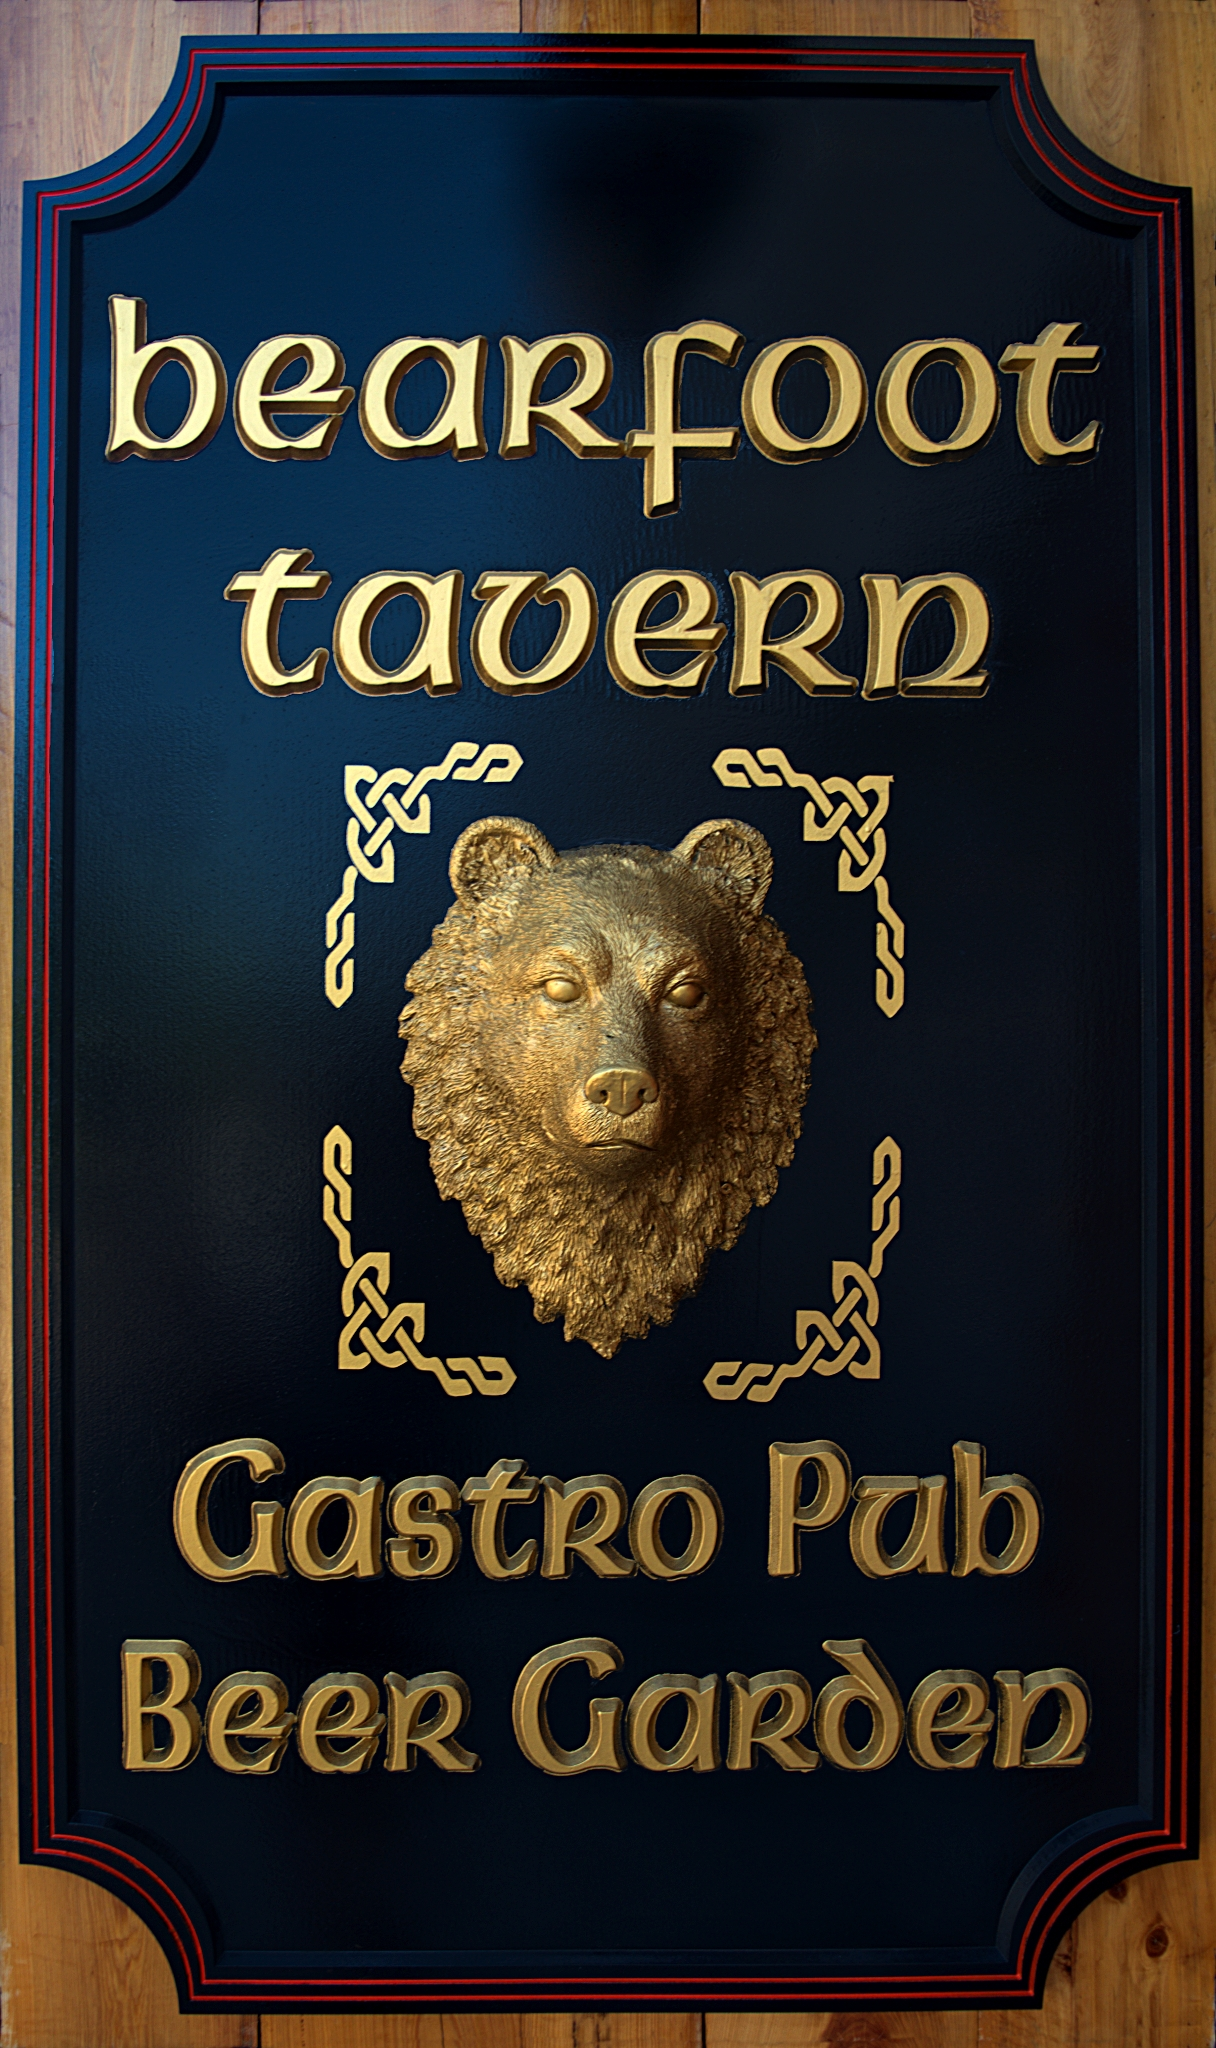 The Bearfoot Tavern